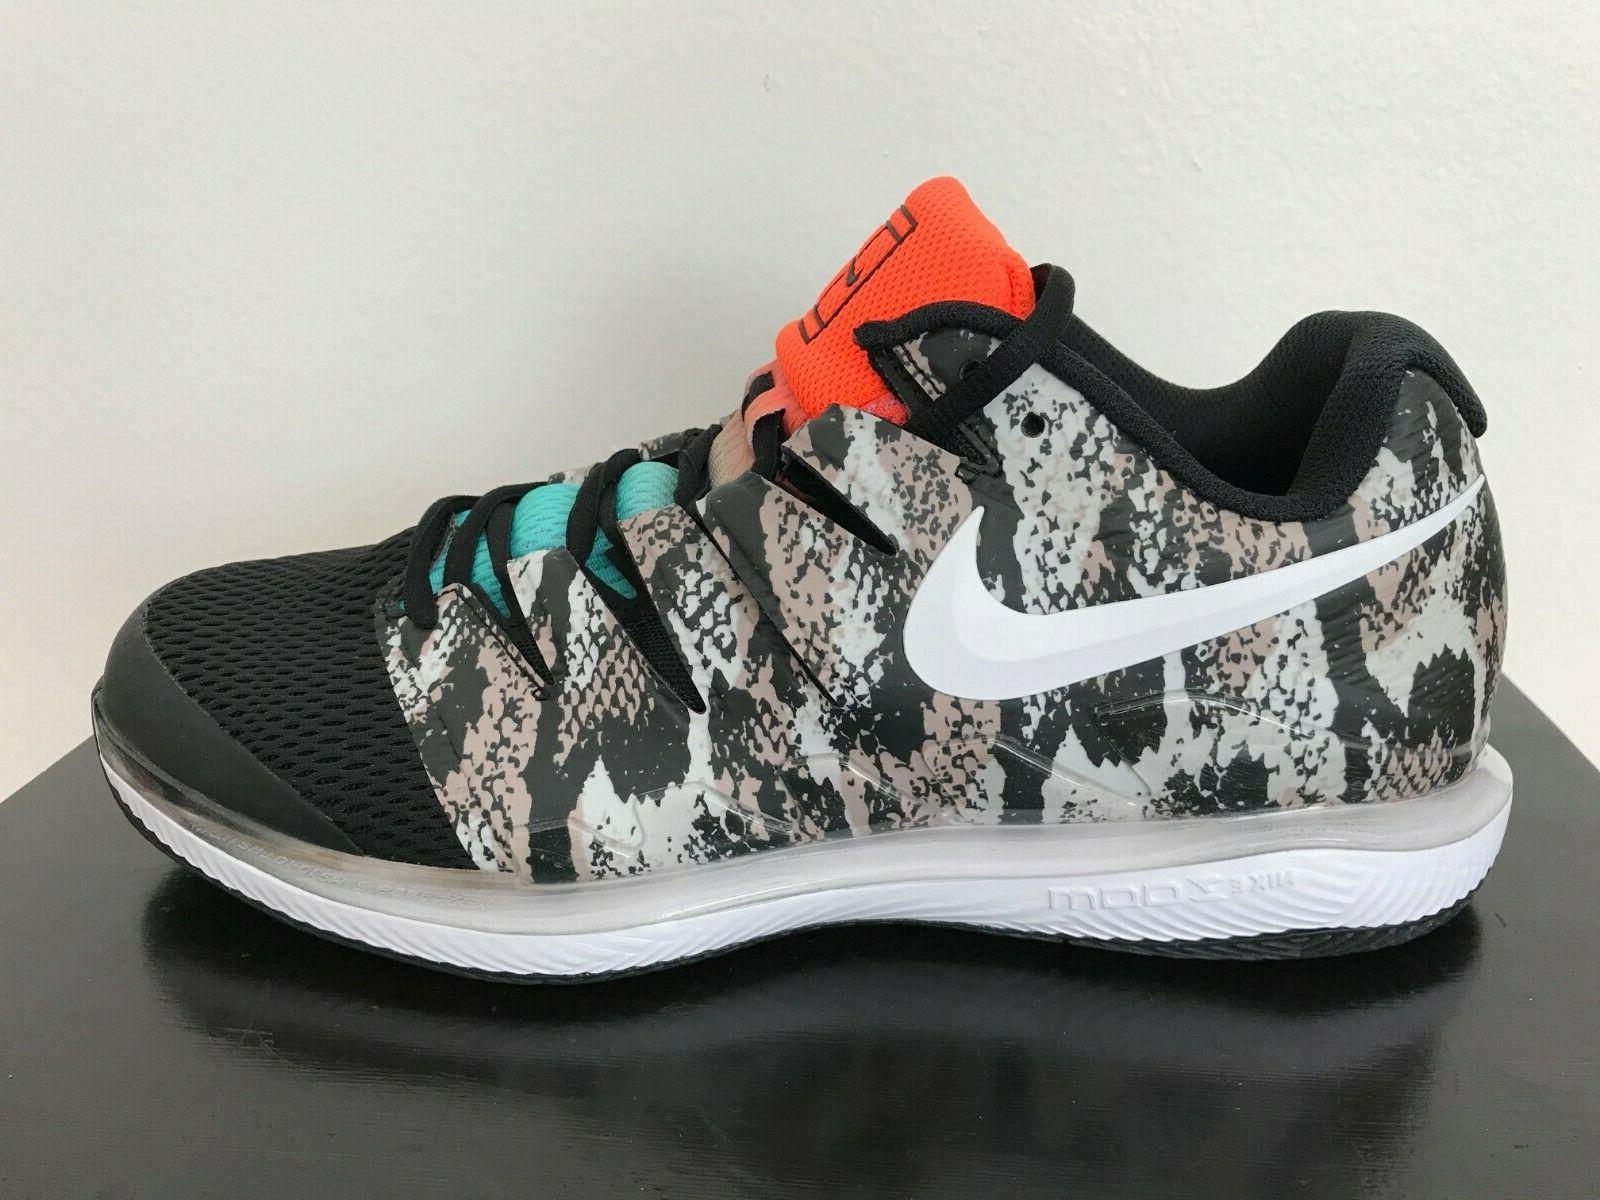 New Nike Court HC X Tennis Shoes, Photon Dust